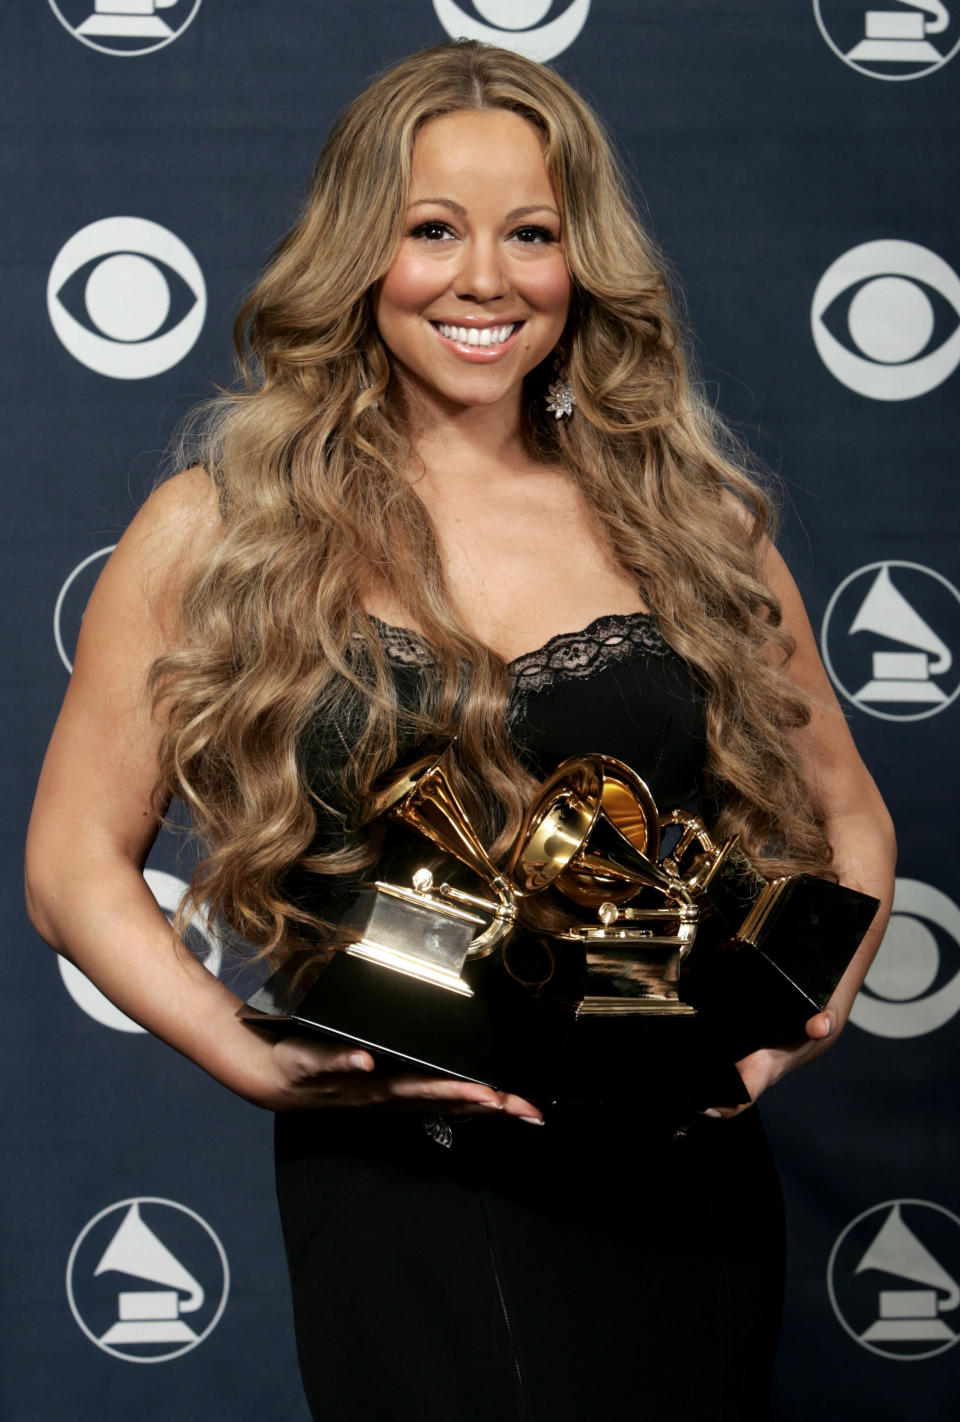 """FILE - Mariah Carey holds her three Grammy's for, best female R&B vocal performance, best contemporary R&B album, and best R&B song at the 48th Annual Grammy Awards in Los Angeles on Feb. 8, 2006. Johnta Austin worked with Mariah Carey on the hit song """"We Belong Together."""" (AP Photo/Reed Saxon, File)"""